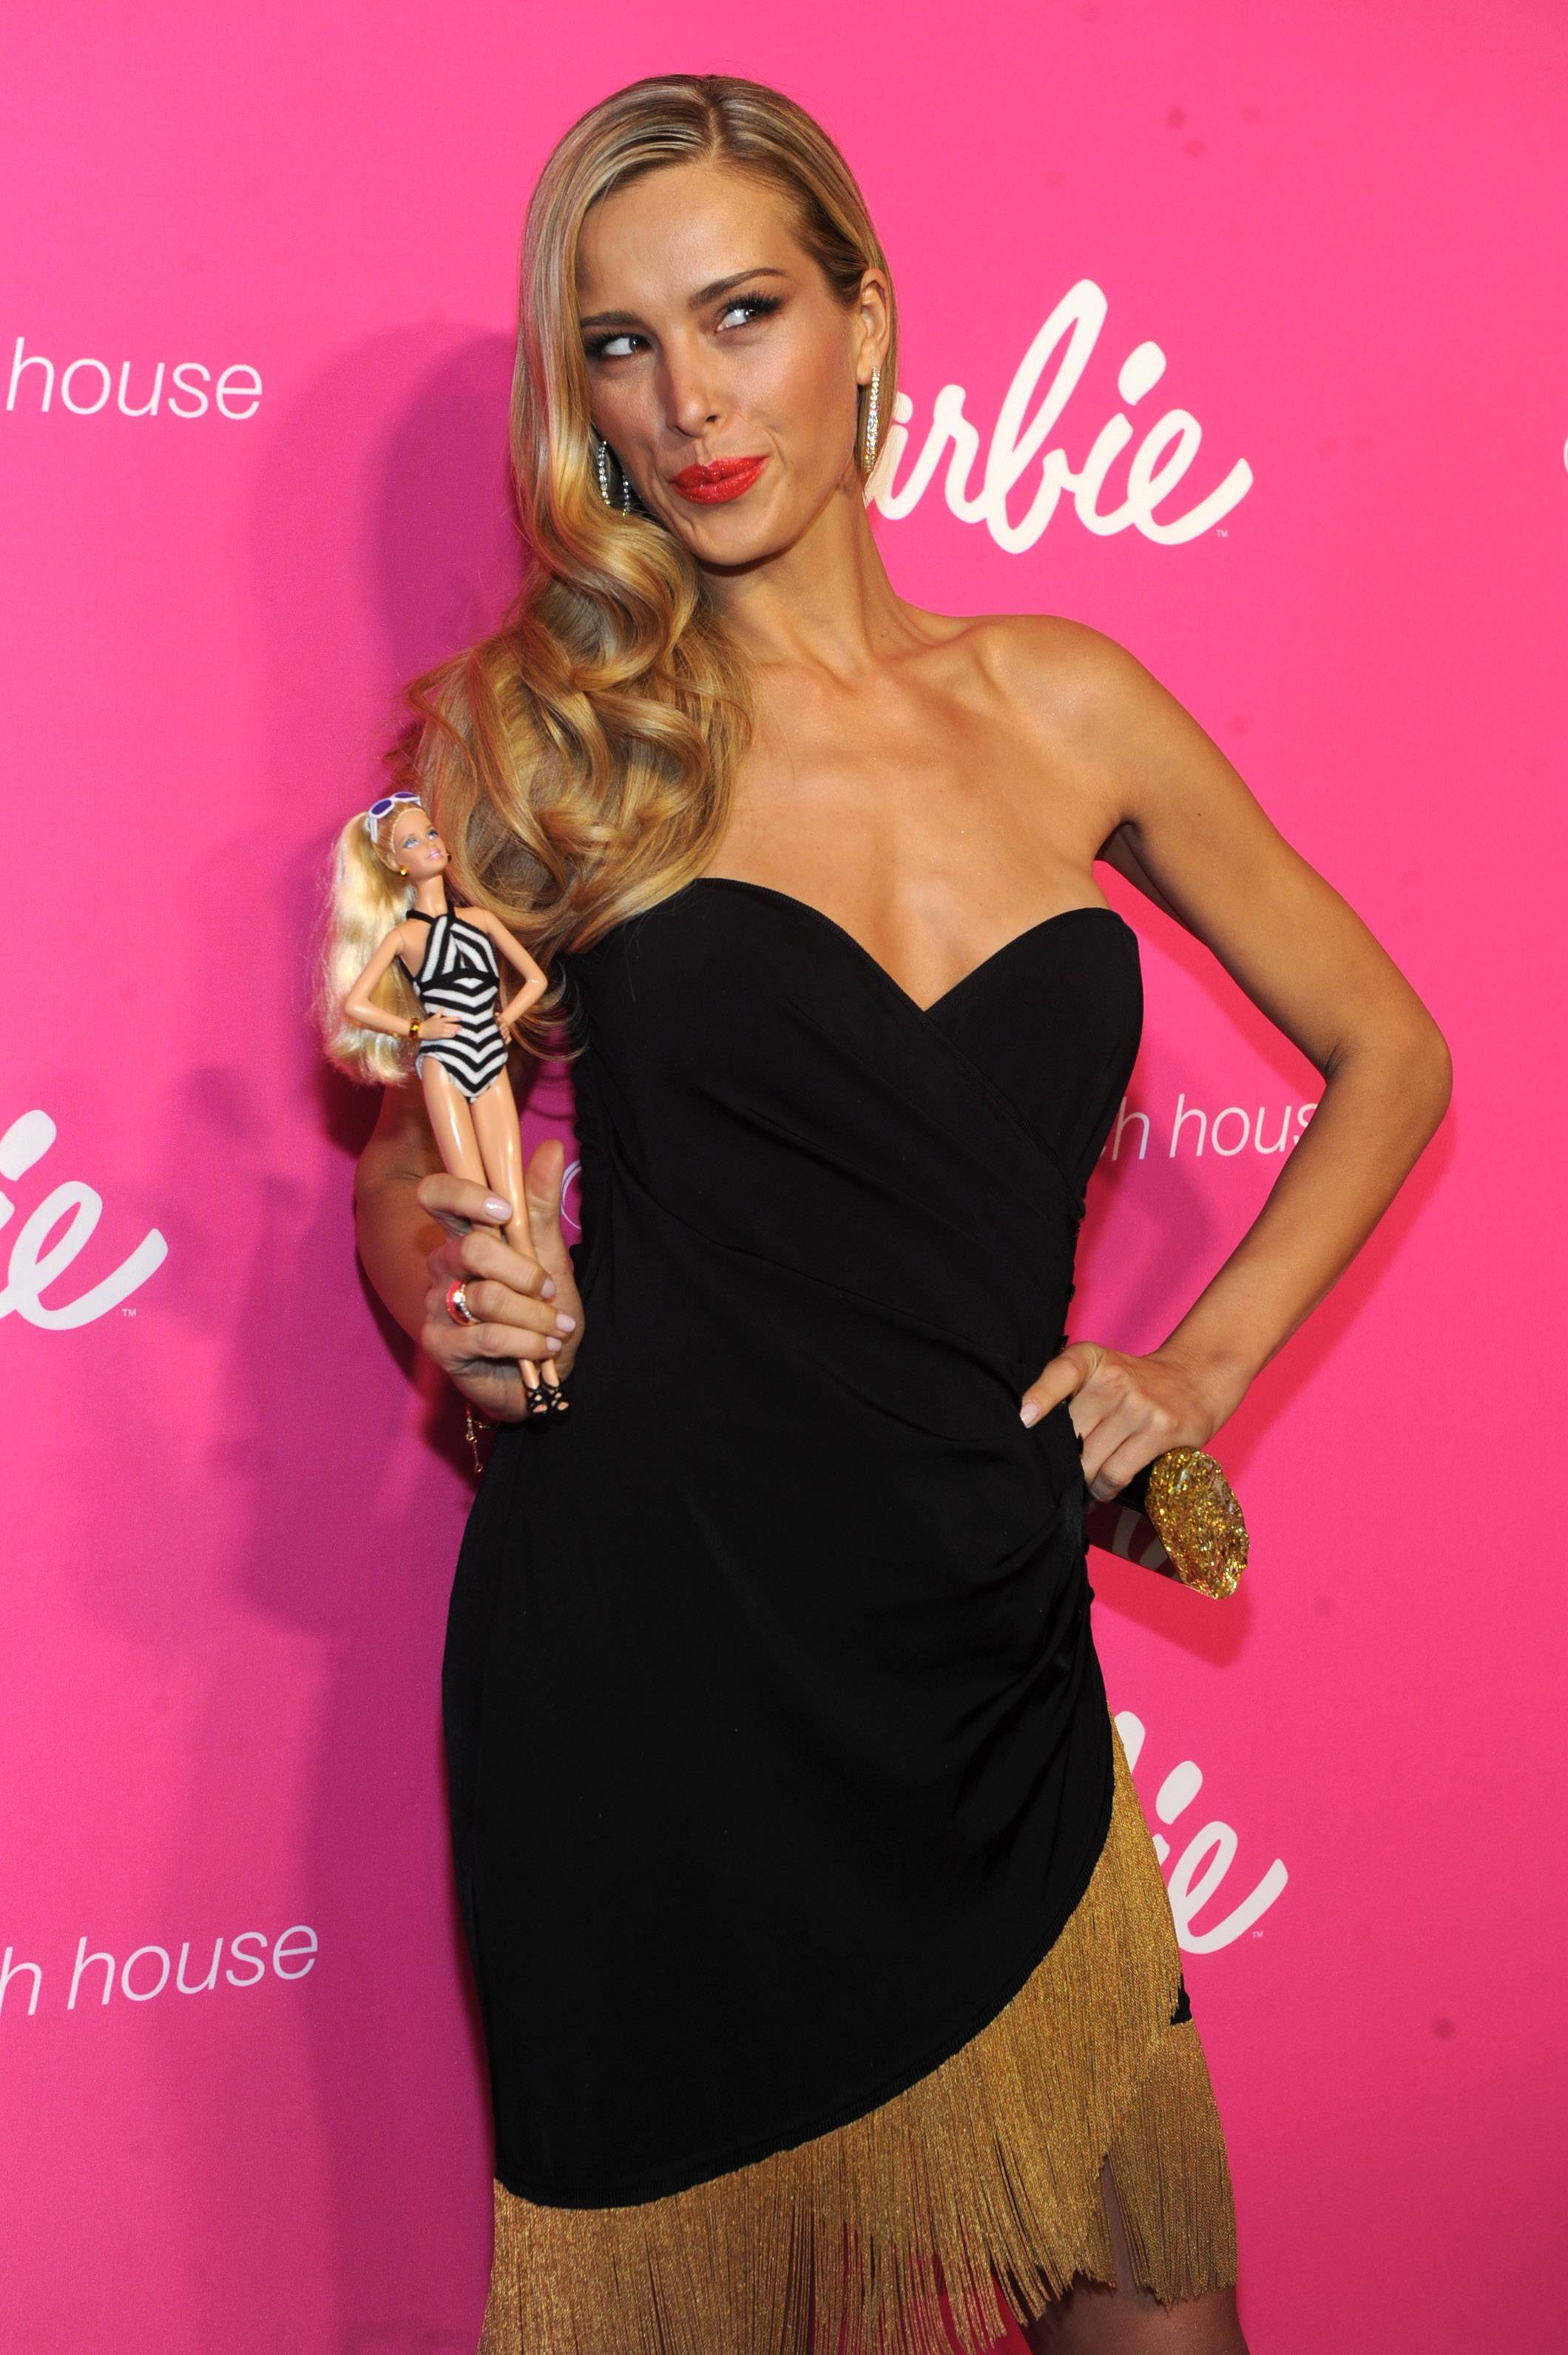 IMAGE DISTRIBUTED FOR BARBIE -- Model Petra Nemcova attends the Barbie and Sports Illustrated Swimsuit 50th anniversary celebration of the Sports Illustrated Swimsuit legends on Monday, Feb. 17, 2014, in New York. (Photo by Diane Bondareff/Invision for Barbie/AP Images)